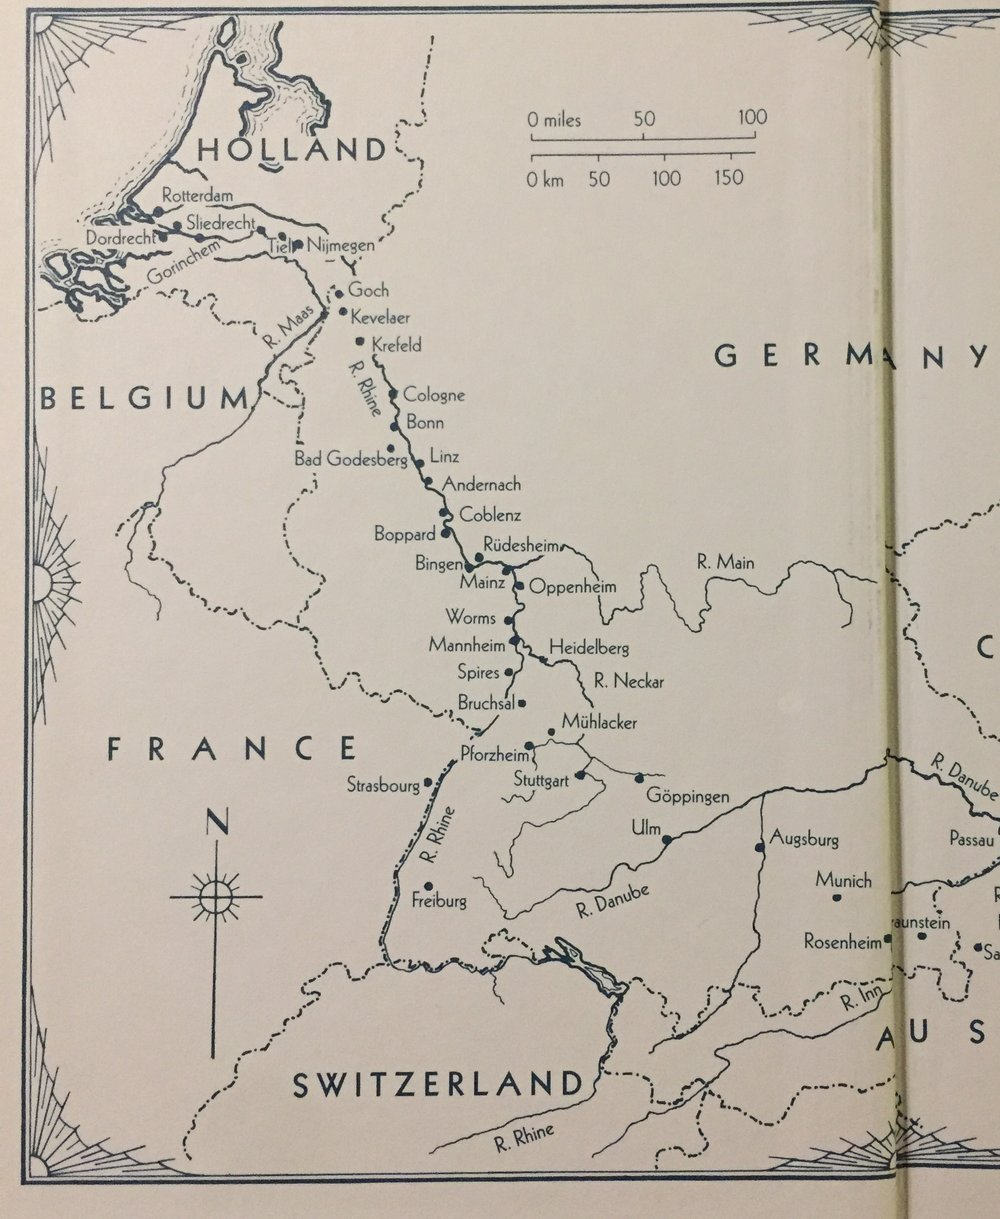 Map taken from The Folio Society edition of   A Time of Gifts   by Patrick Leigh Fermor